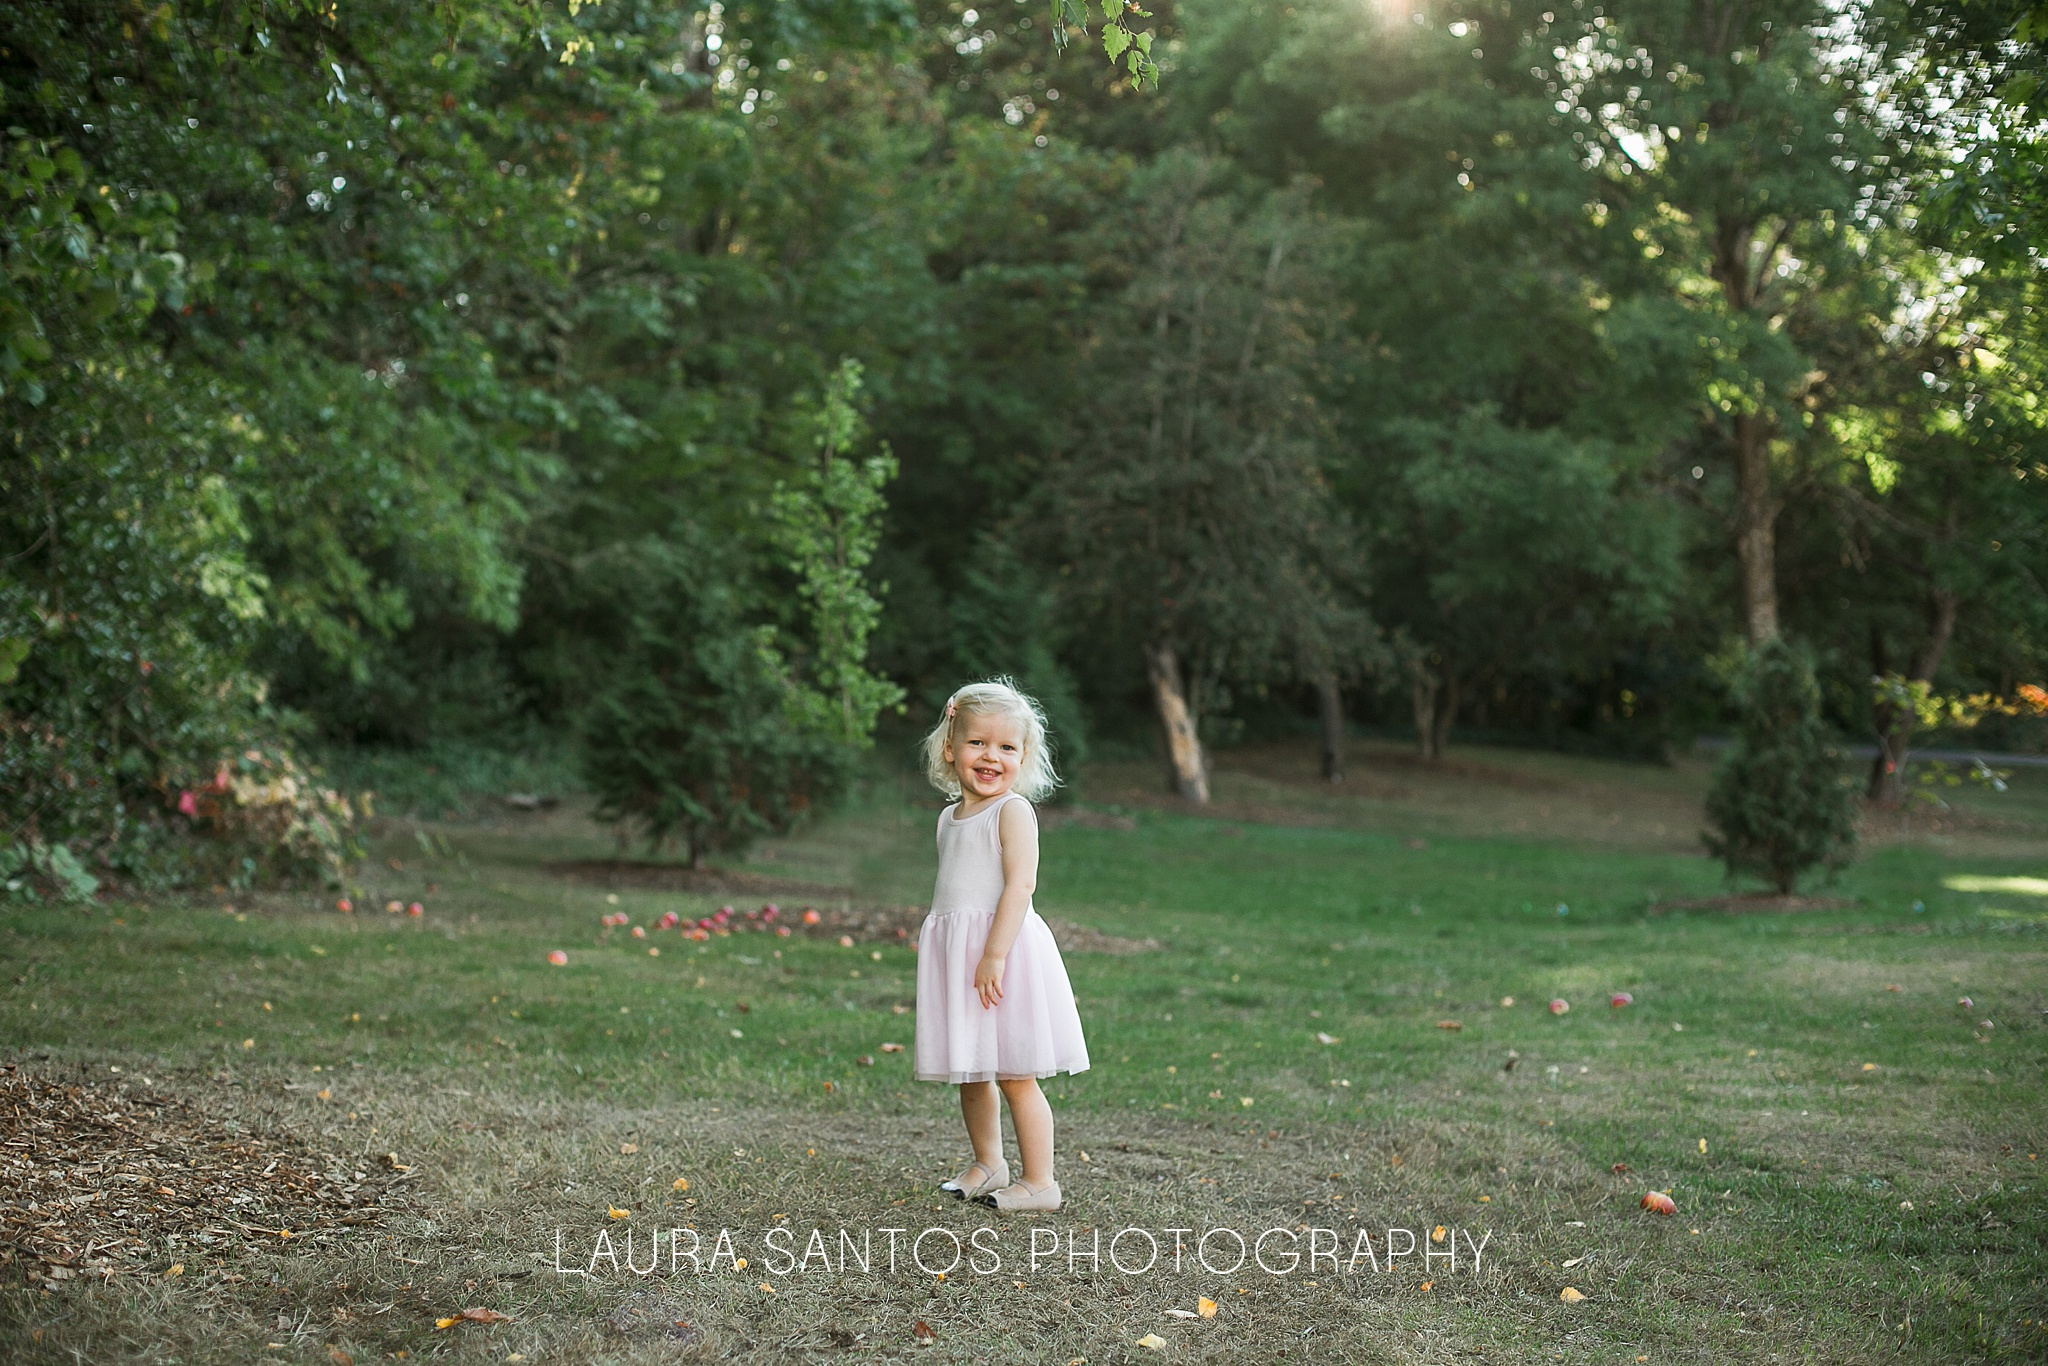 Laura Santos Photography Portland Oregon Family Photographer_0737.jpg